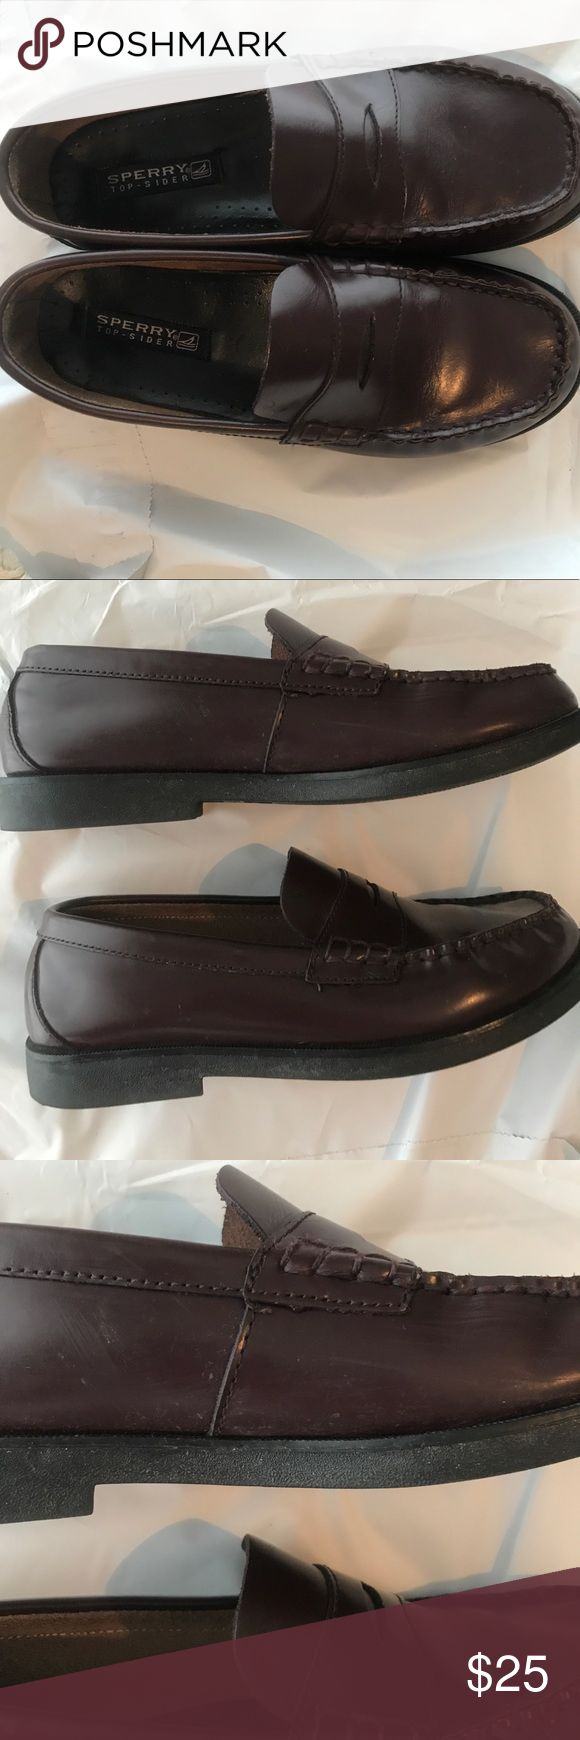 Boys leather sperry loafers size 5 A few scuffs on the sides ( as pictured) but overall are in great condition Sperry Top-Sider Shoes Dress Shoes